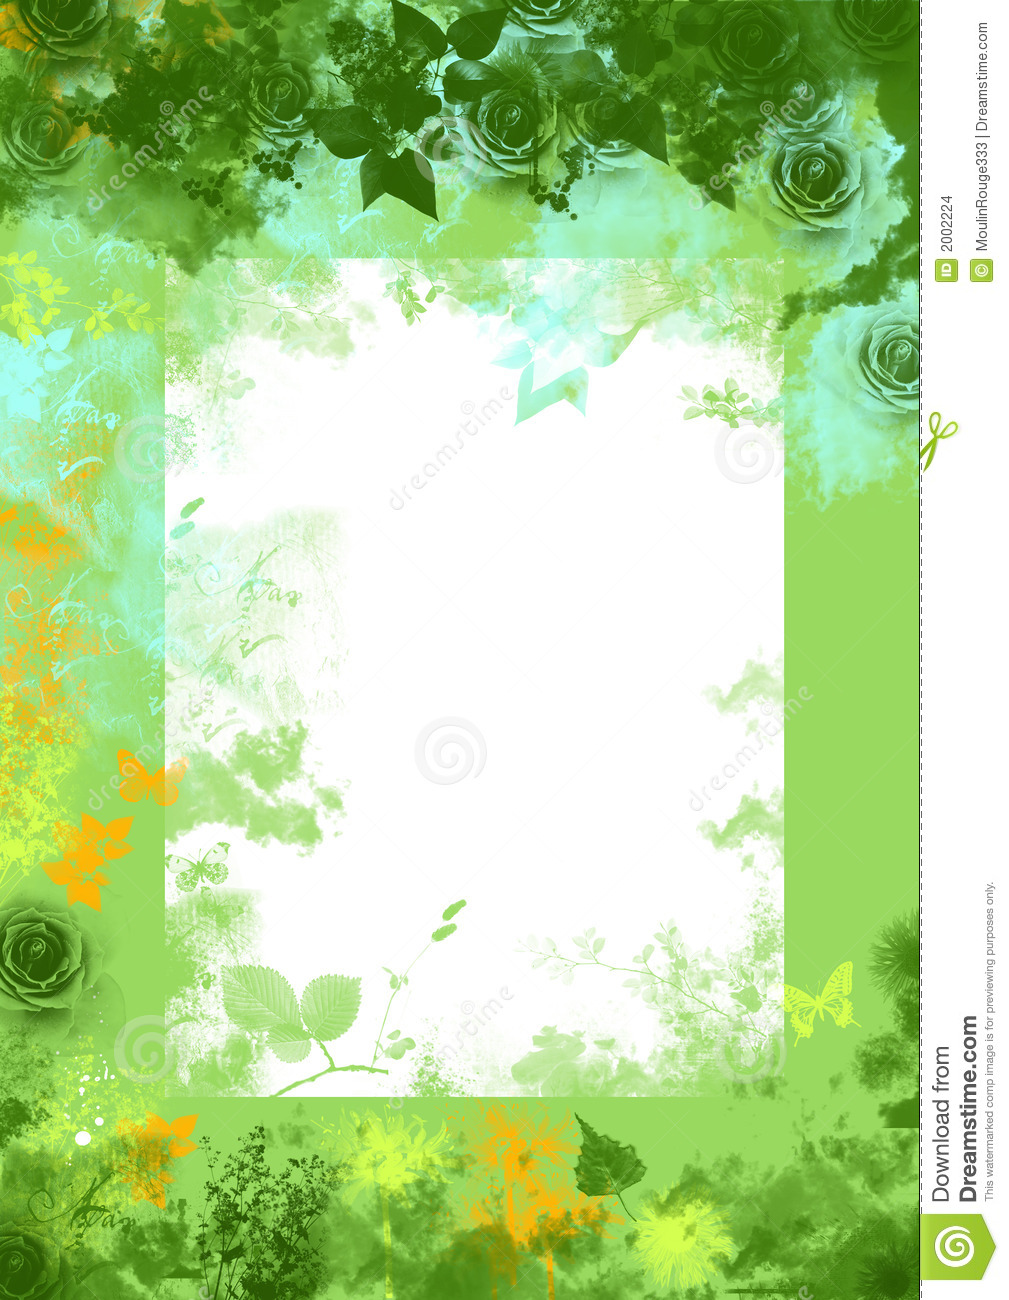 Download Green Spring Floral Grunge Background Stock Illustration - Illustration of green, butterfly: 2002224